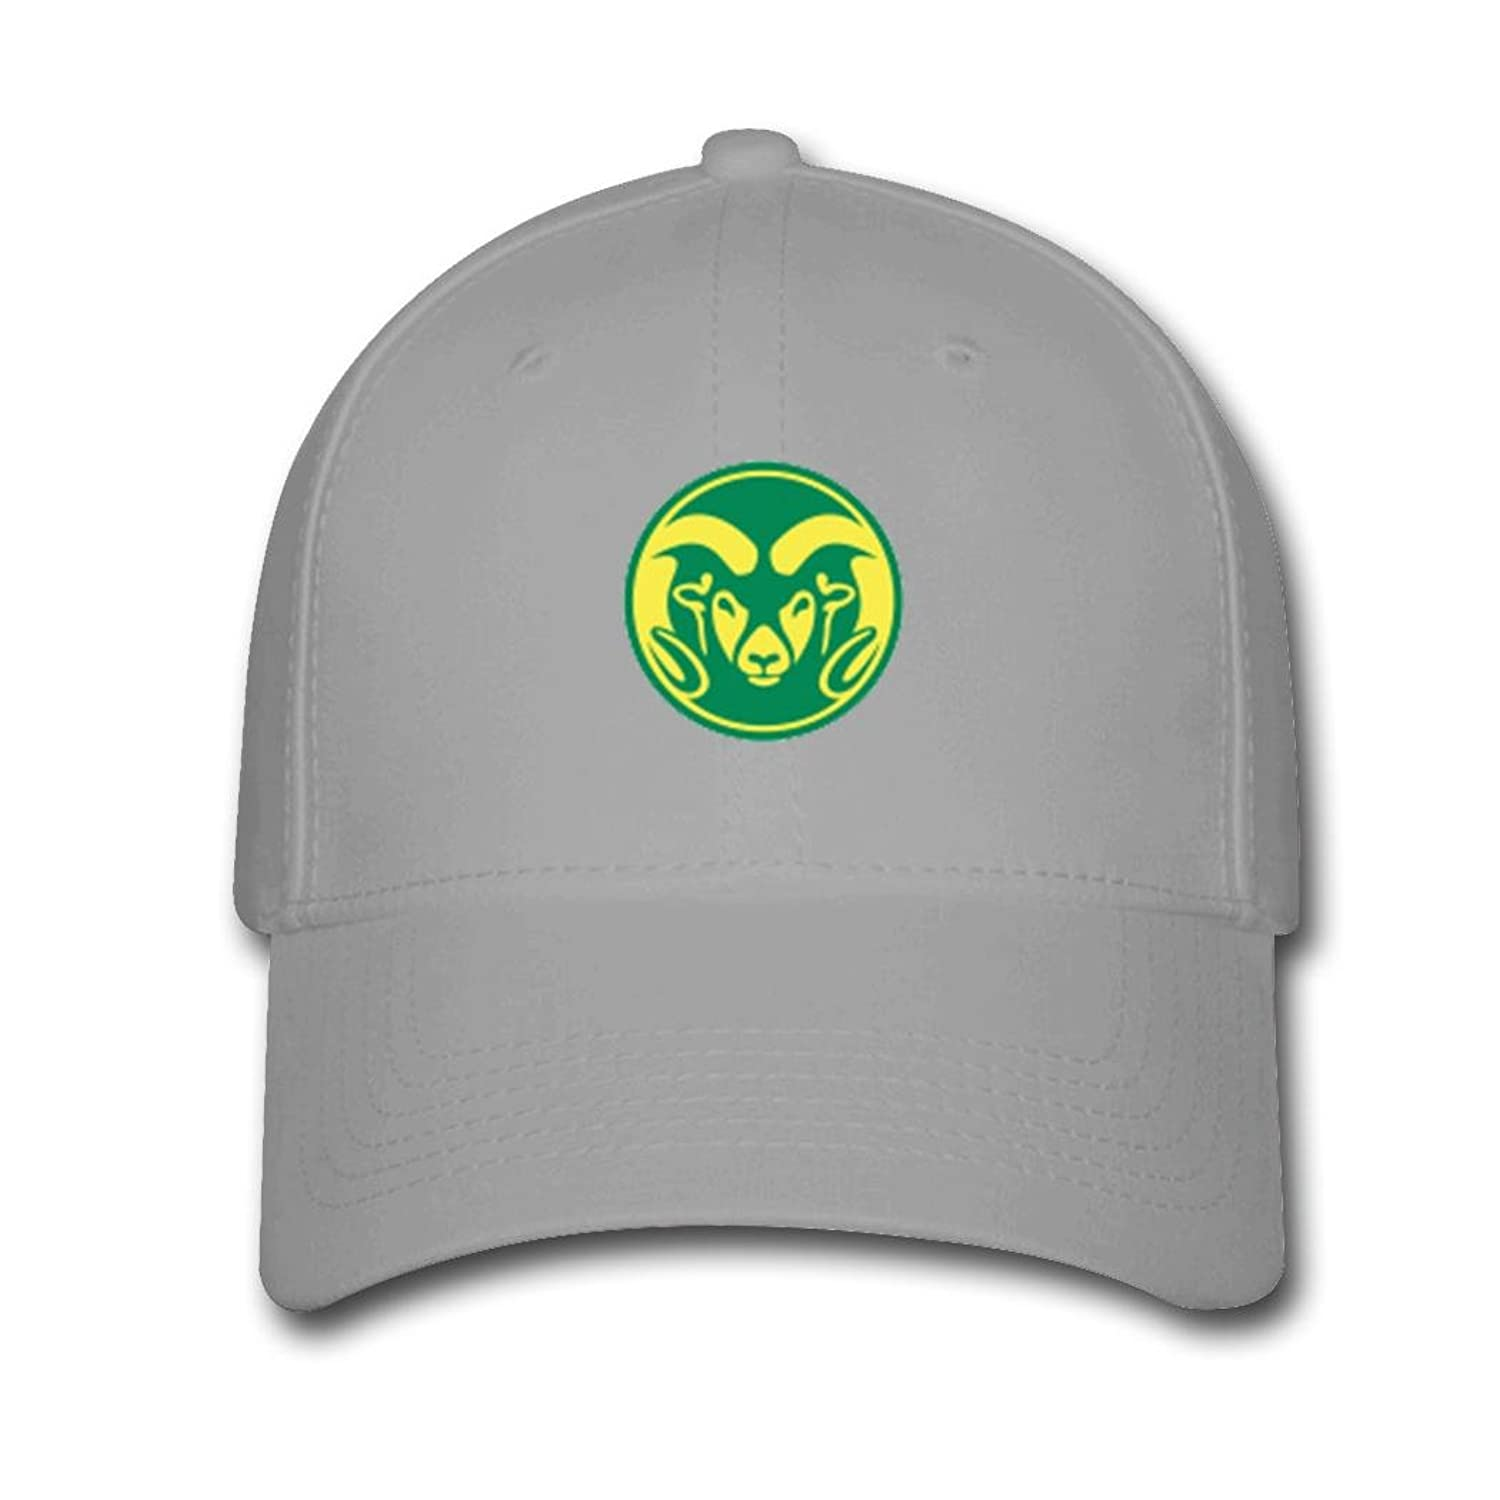 Popular Snapback hat NACC Colorado State Rams 2016 100% cotton Baseball cap for mens womens